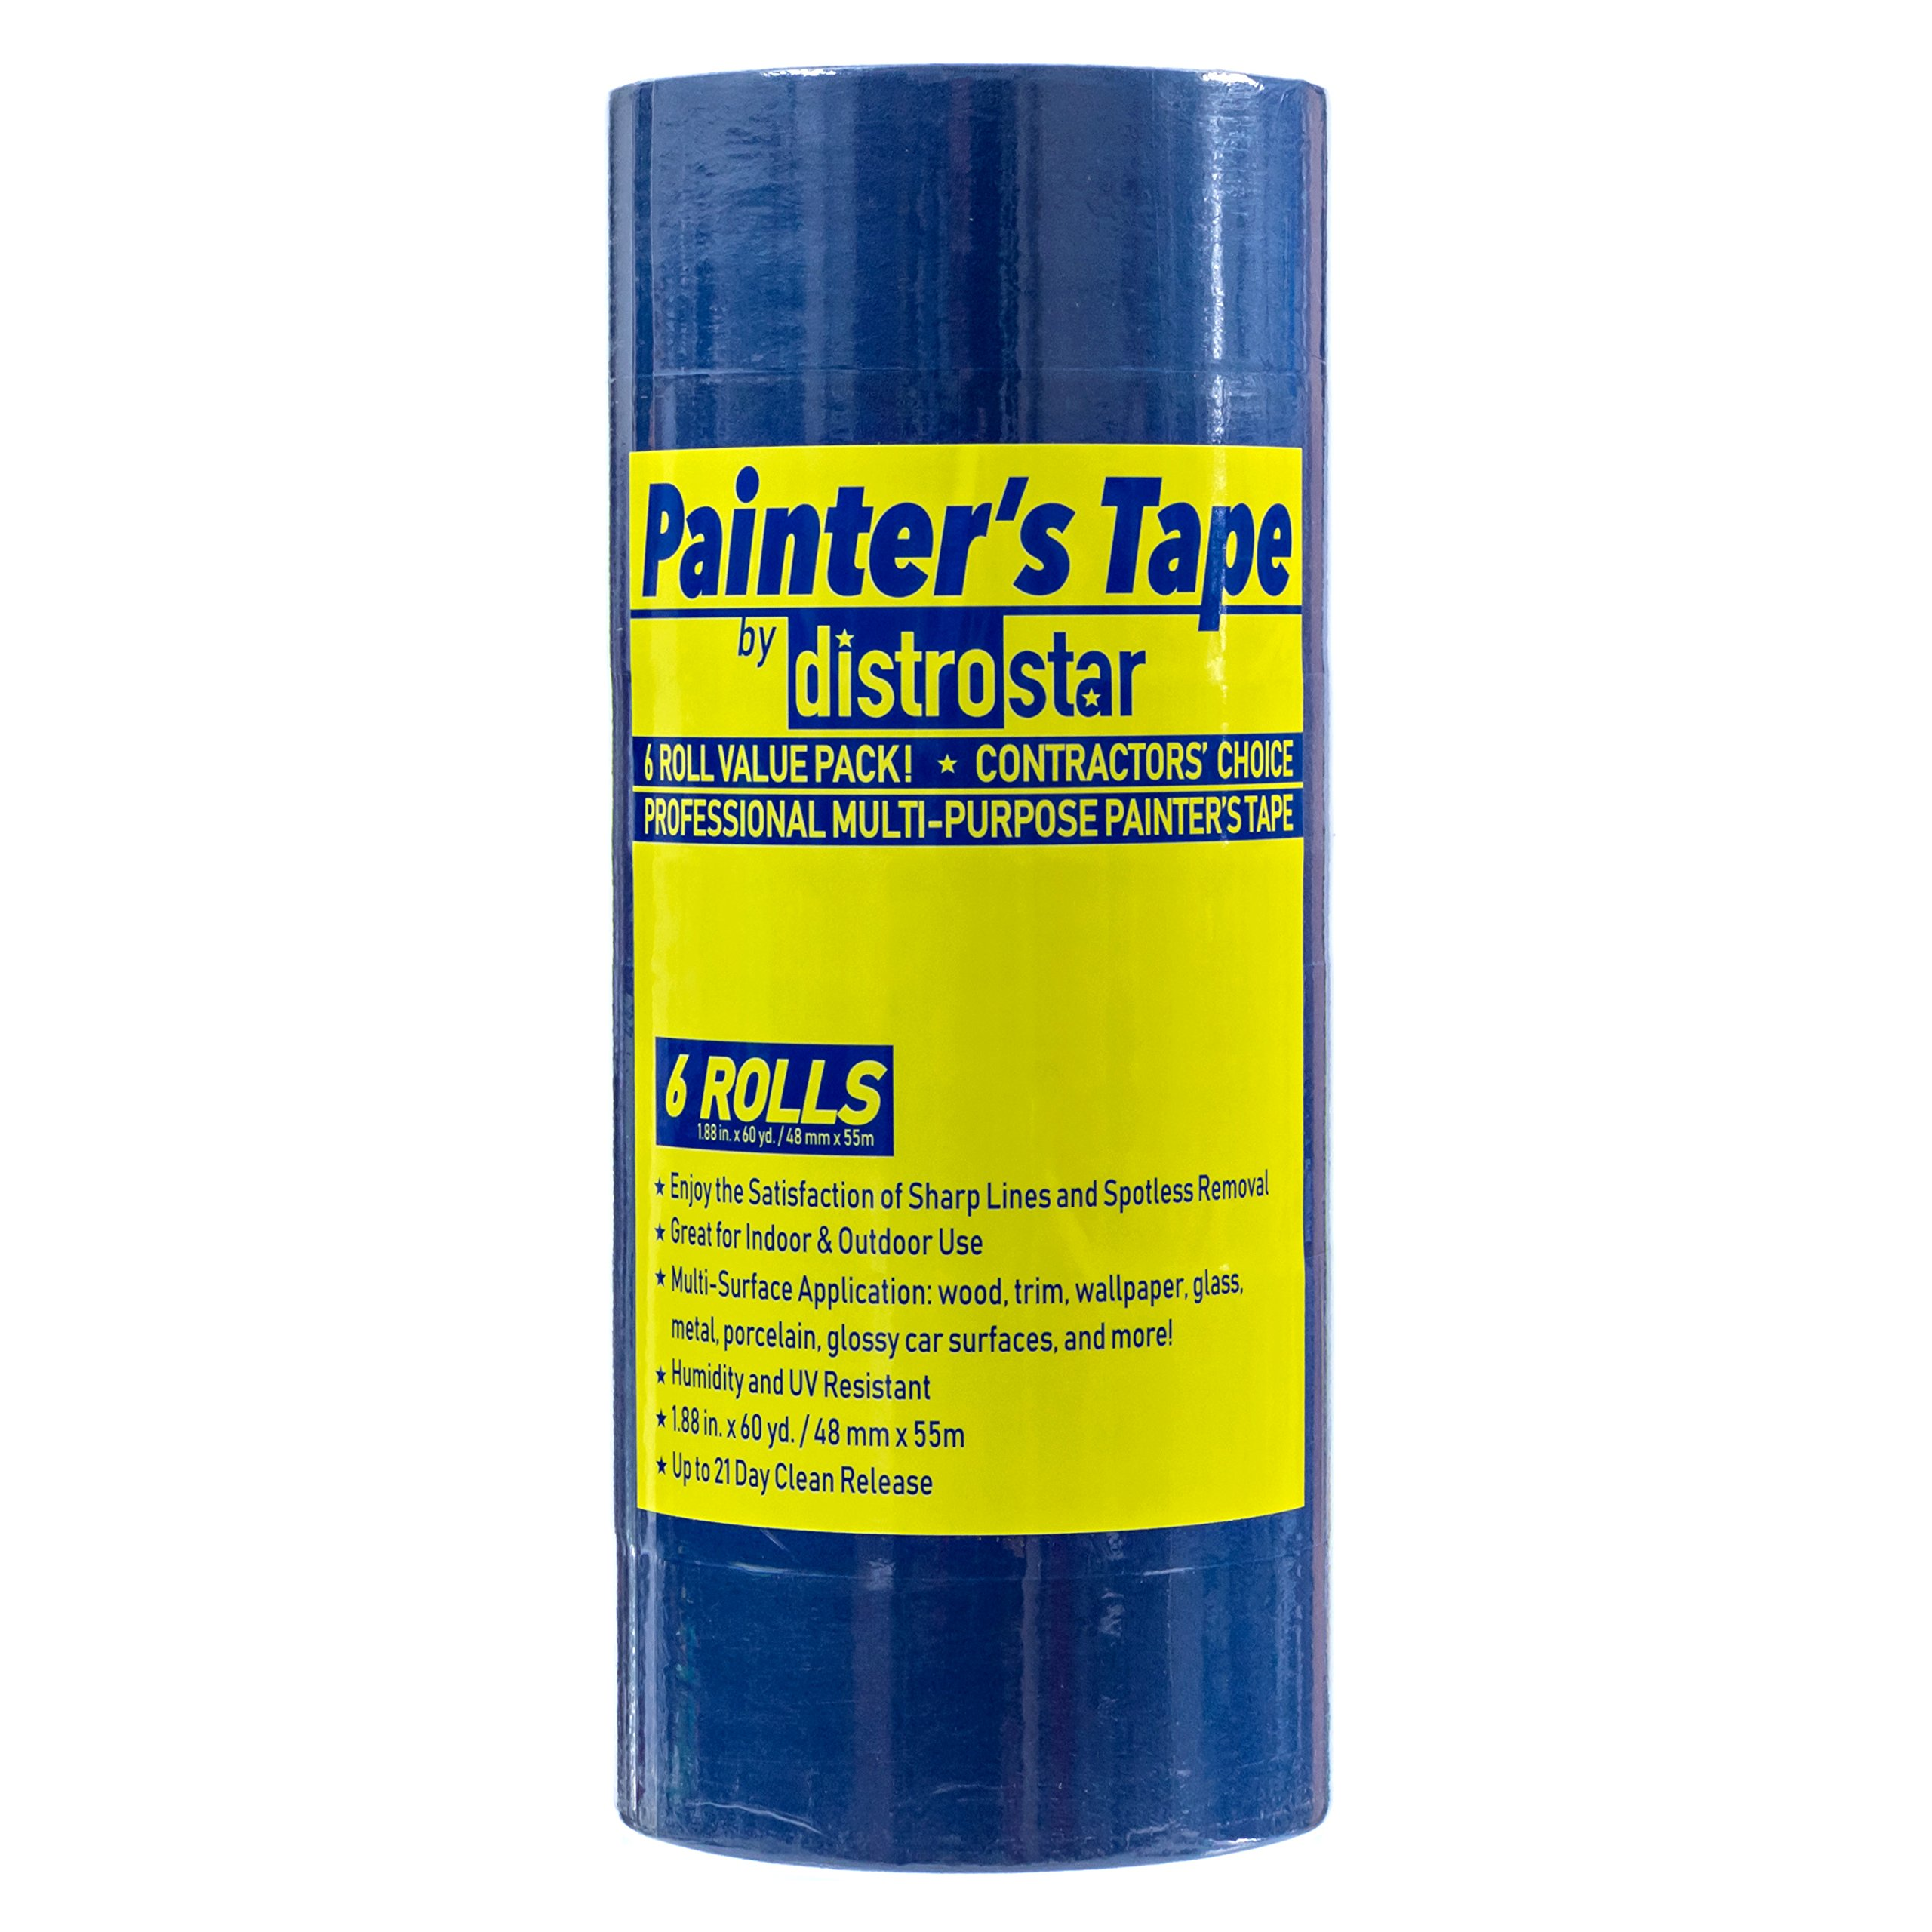 Painter's Tape Blue 2 inch (1.88 in x 60 yd) 6 Roll Contractor Pack UV Protection 21 Day Easy Peel Perfect Lines Humidity Resistant Paint Like A PRO Professional Painter Premium Quality Masking Value by Distro Star (Image #2)